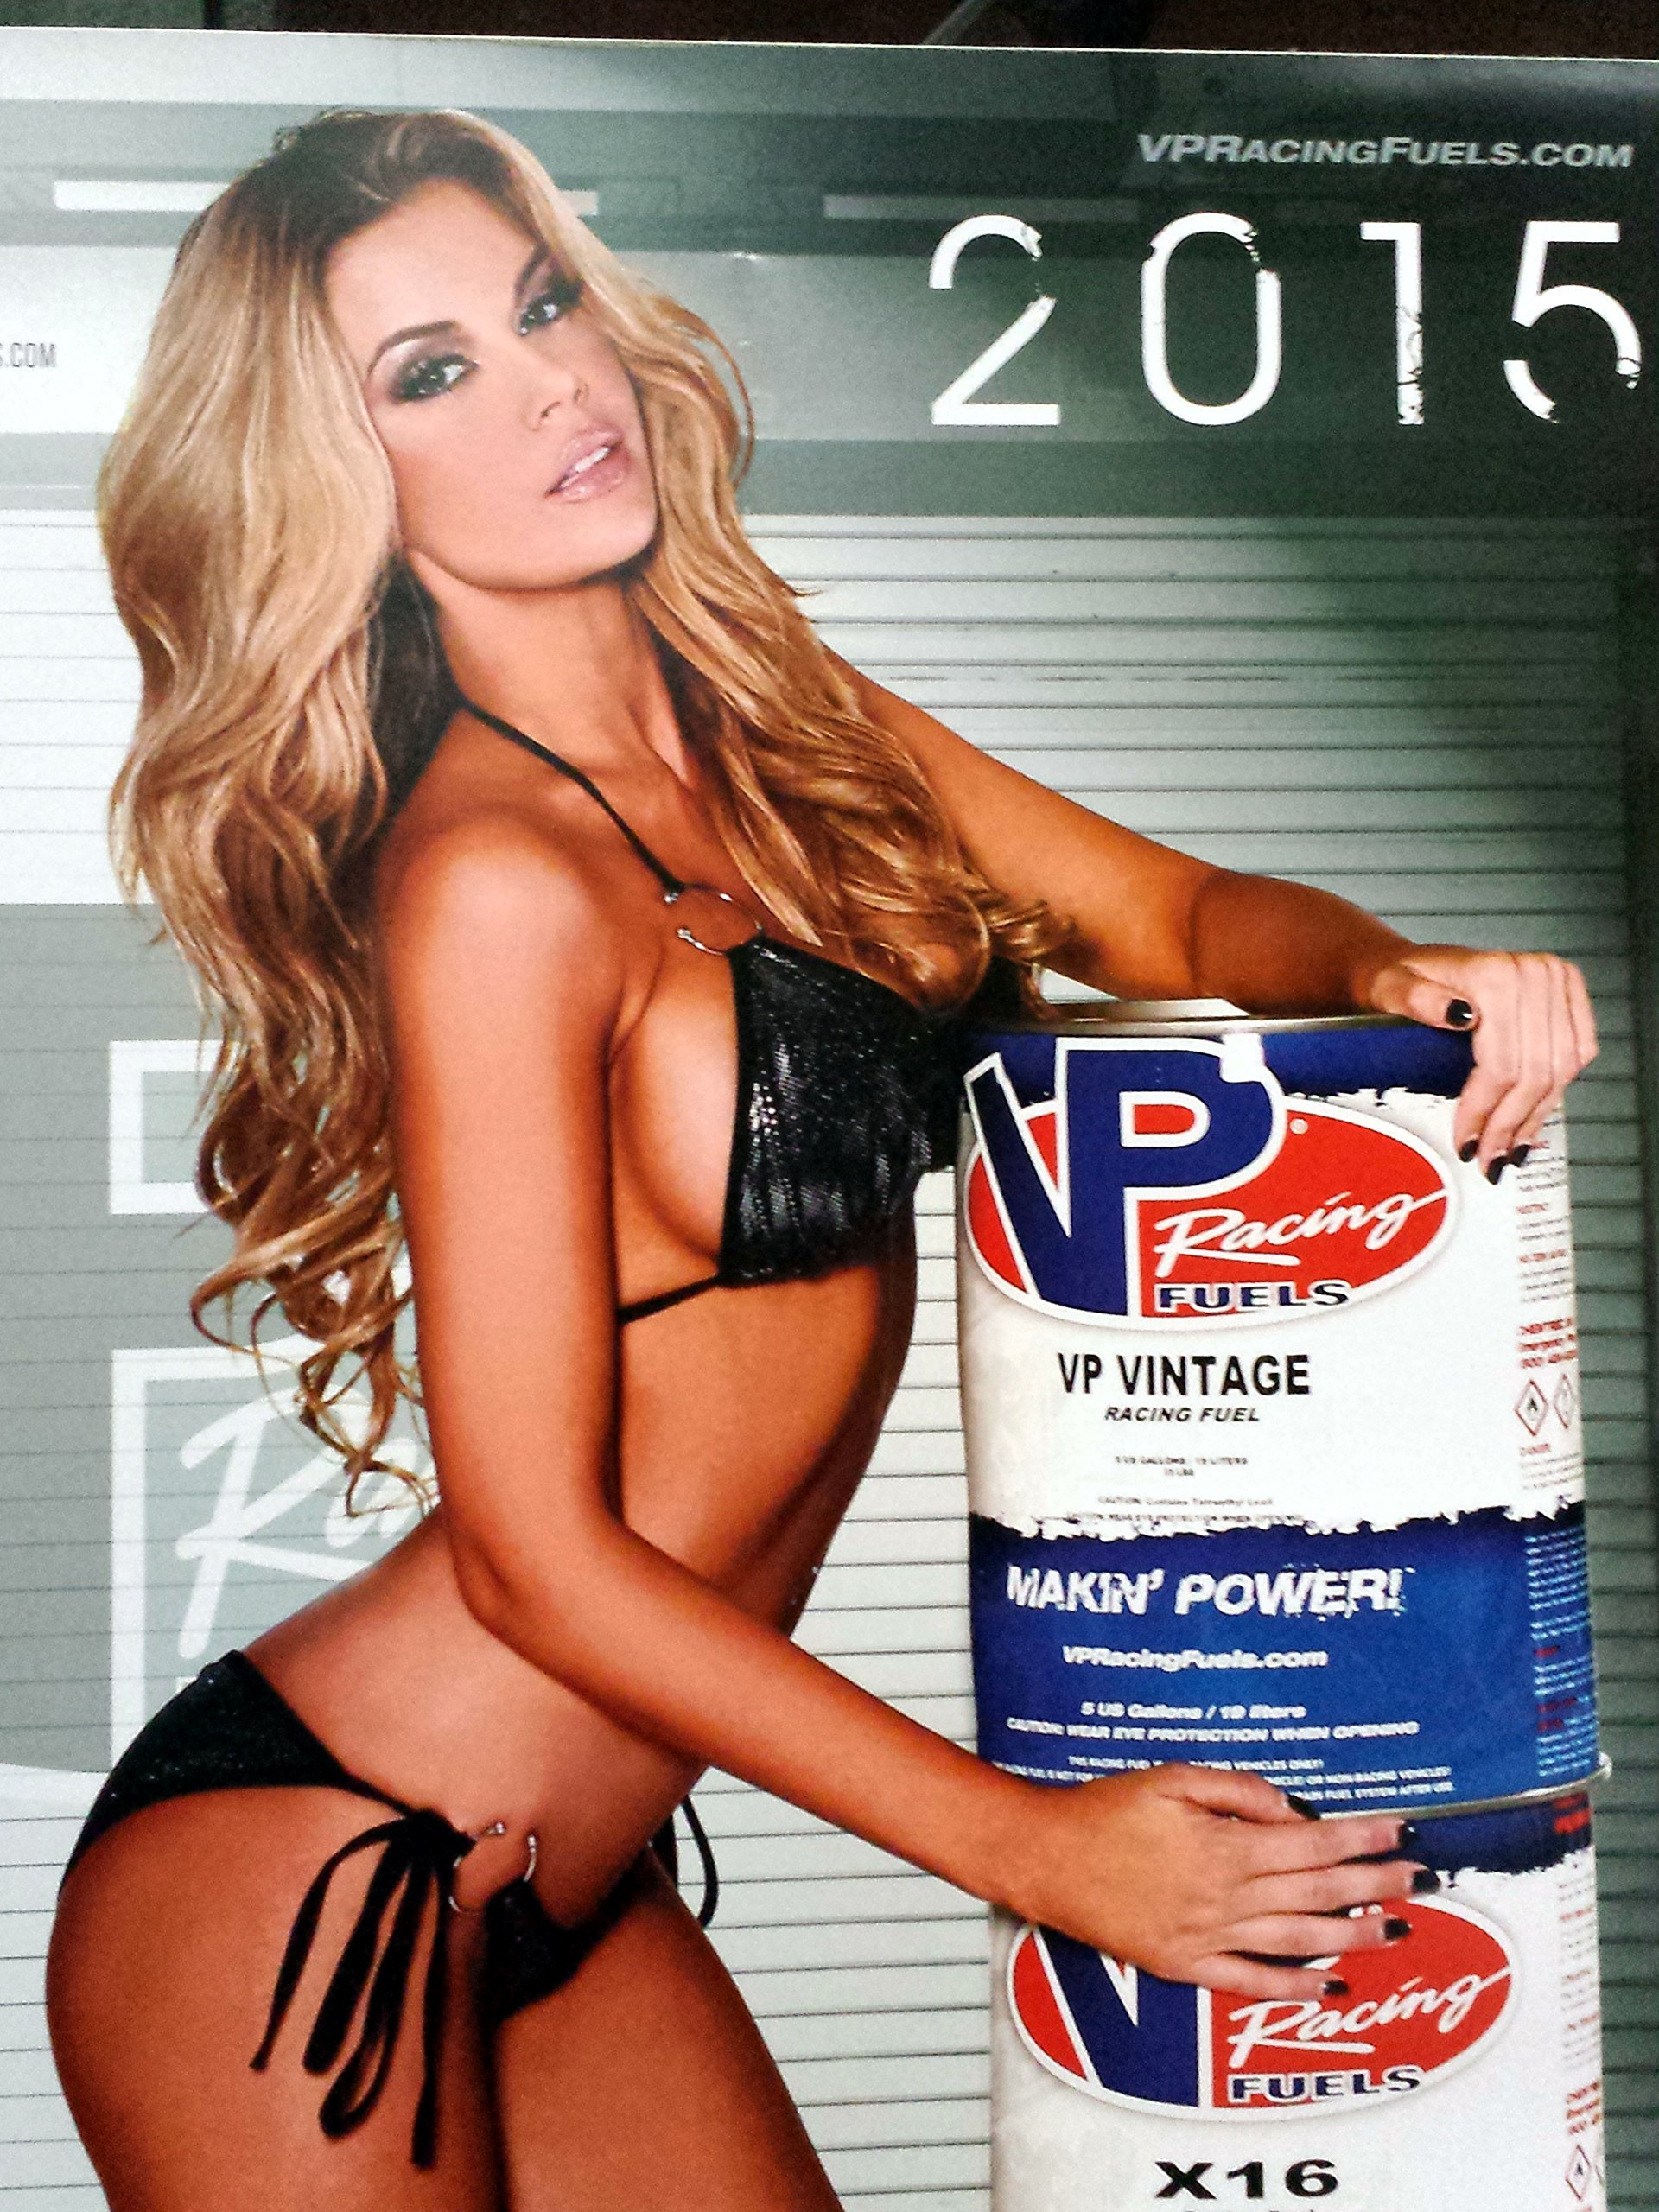 VP Racing Fuels Fuel 2015 18x24 Inch Pin-Up Poster for Your Shop Store Drag Race Track Trailer for Auto Bike Mechanic Calendar Poster Hot Pinup Bikini Pic